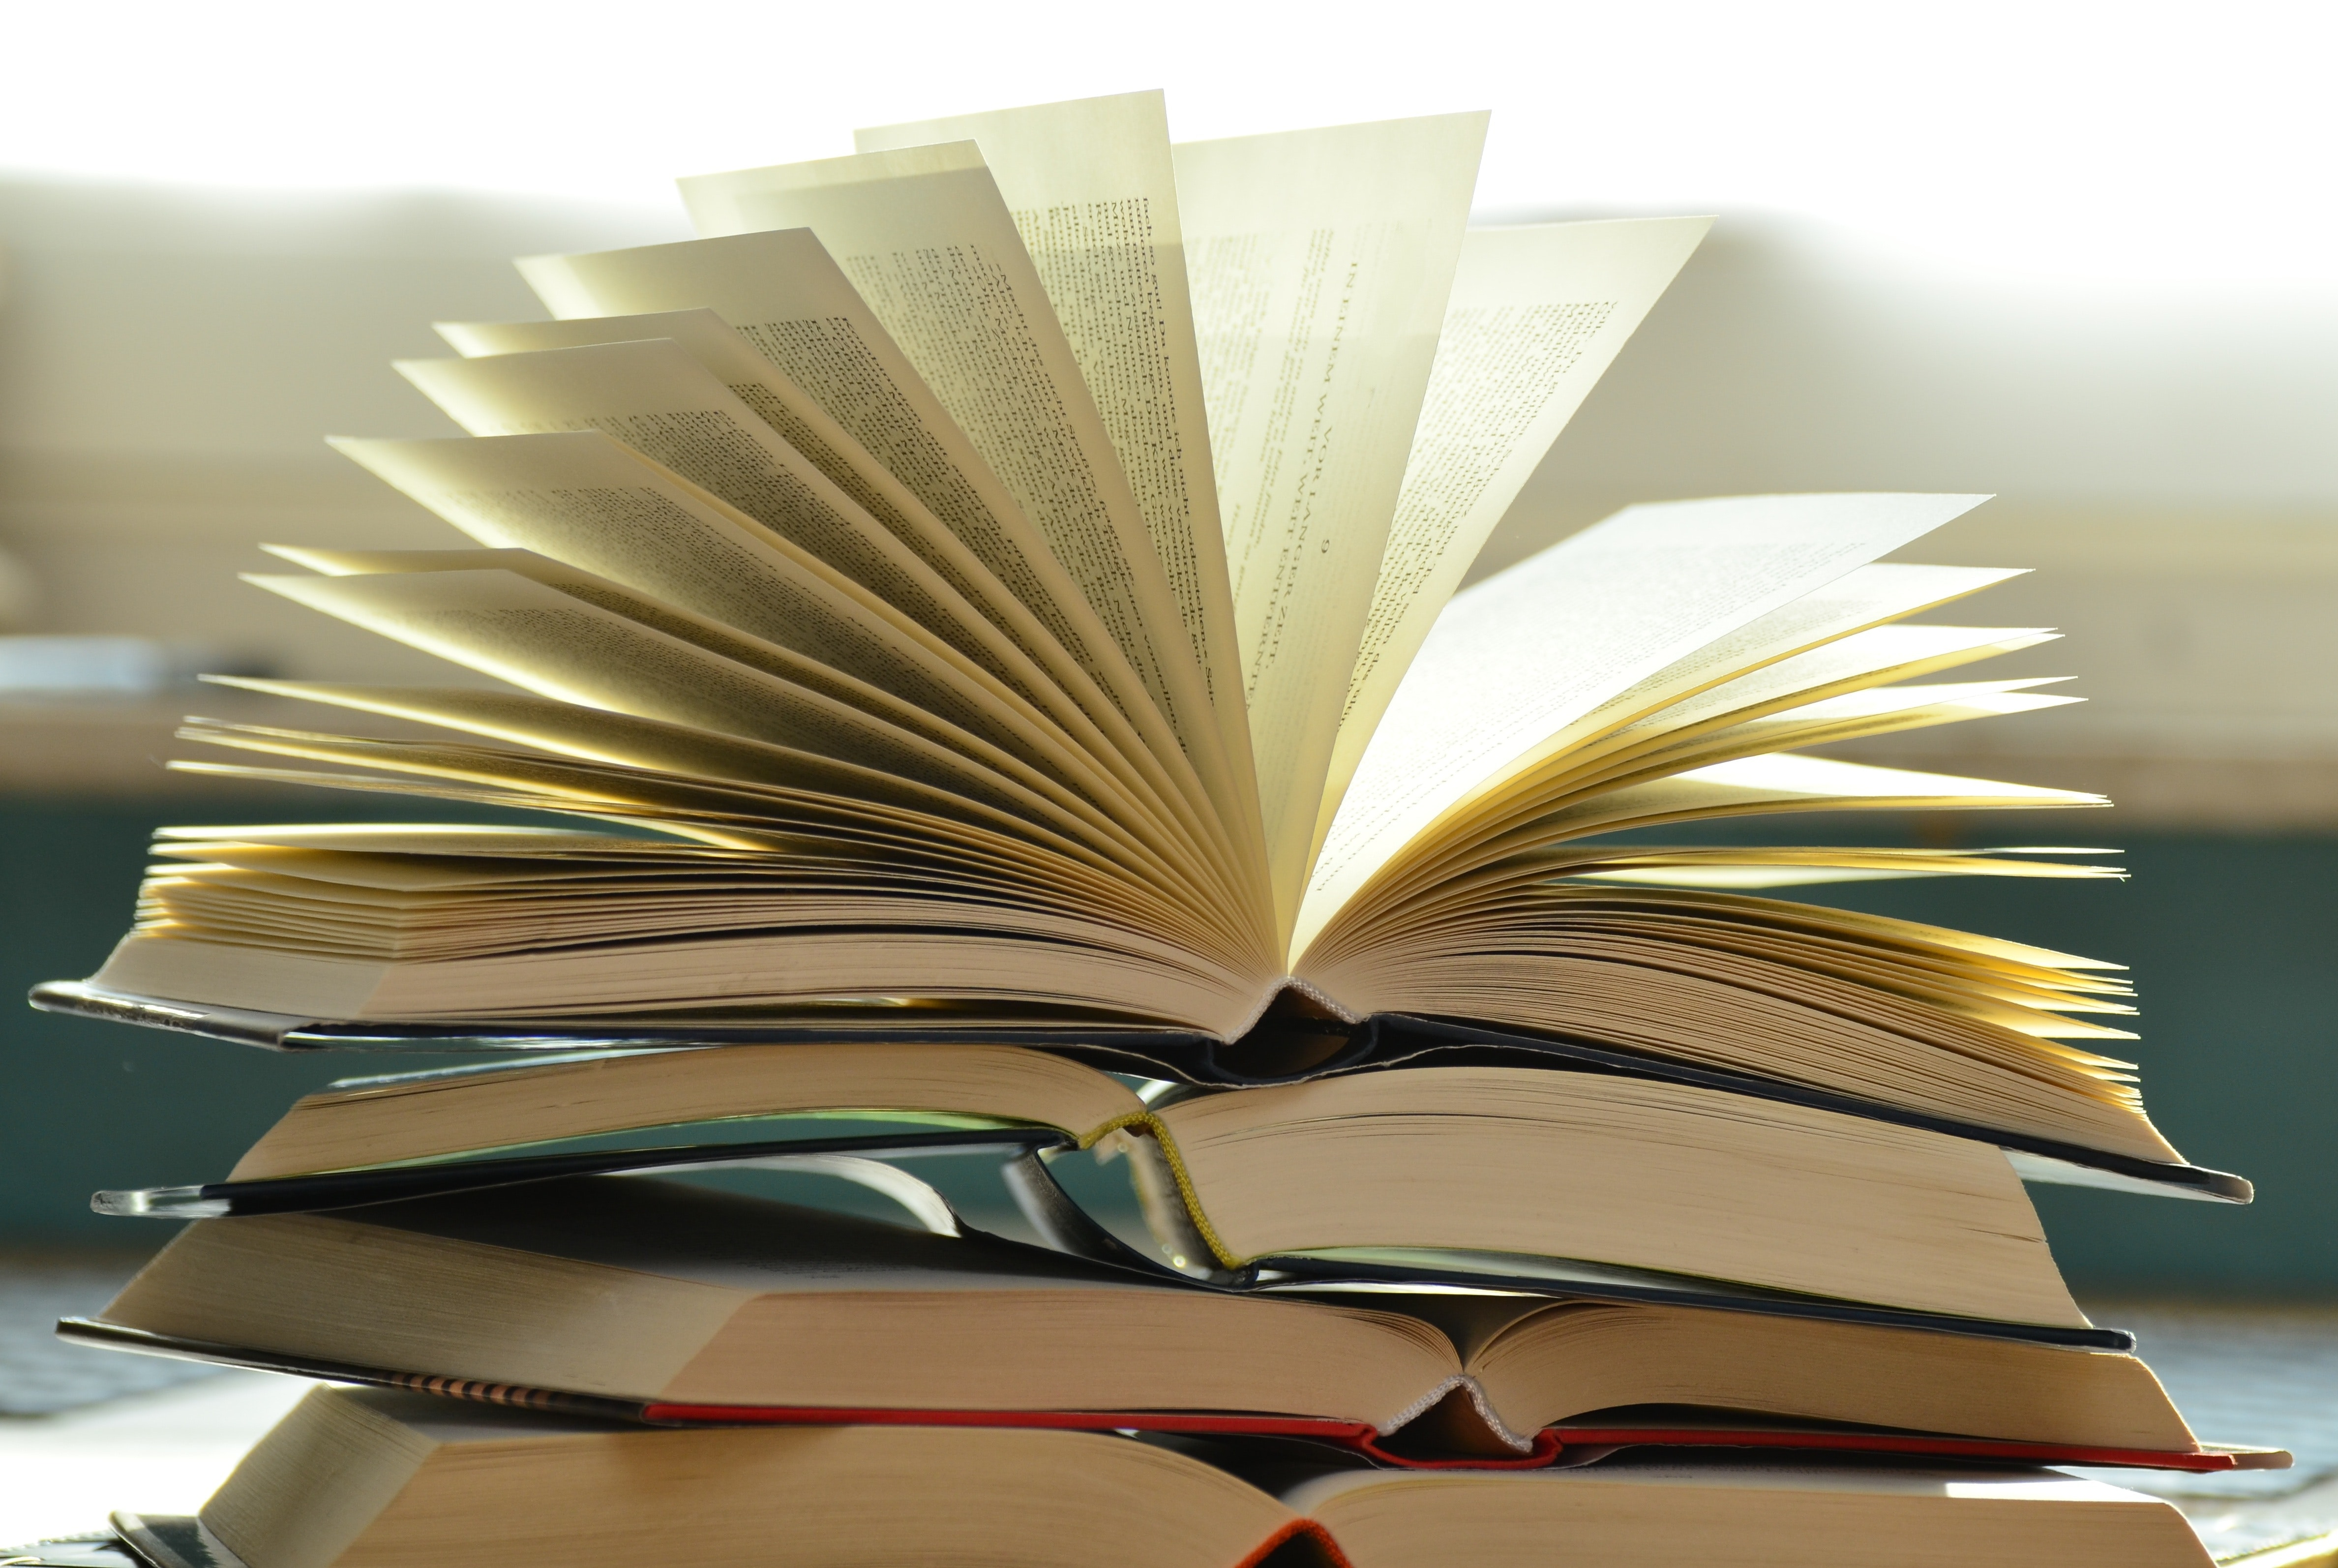 A stack of open books with a blurred background. Photo from Pixabay via Pexels.com.